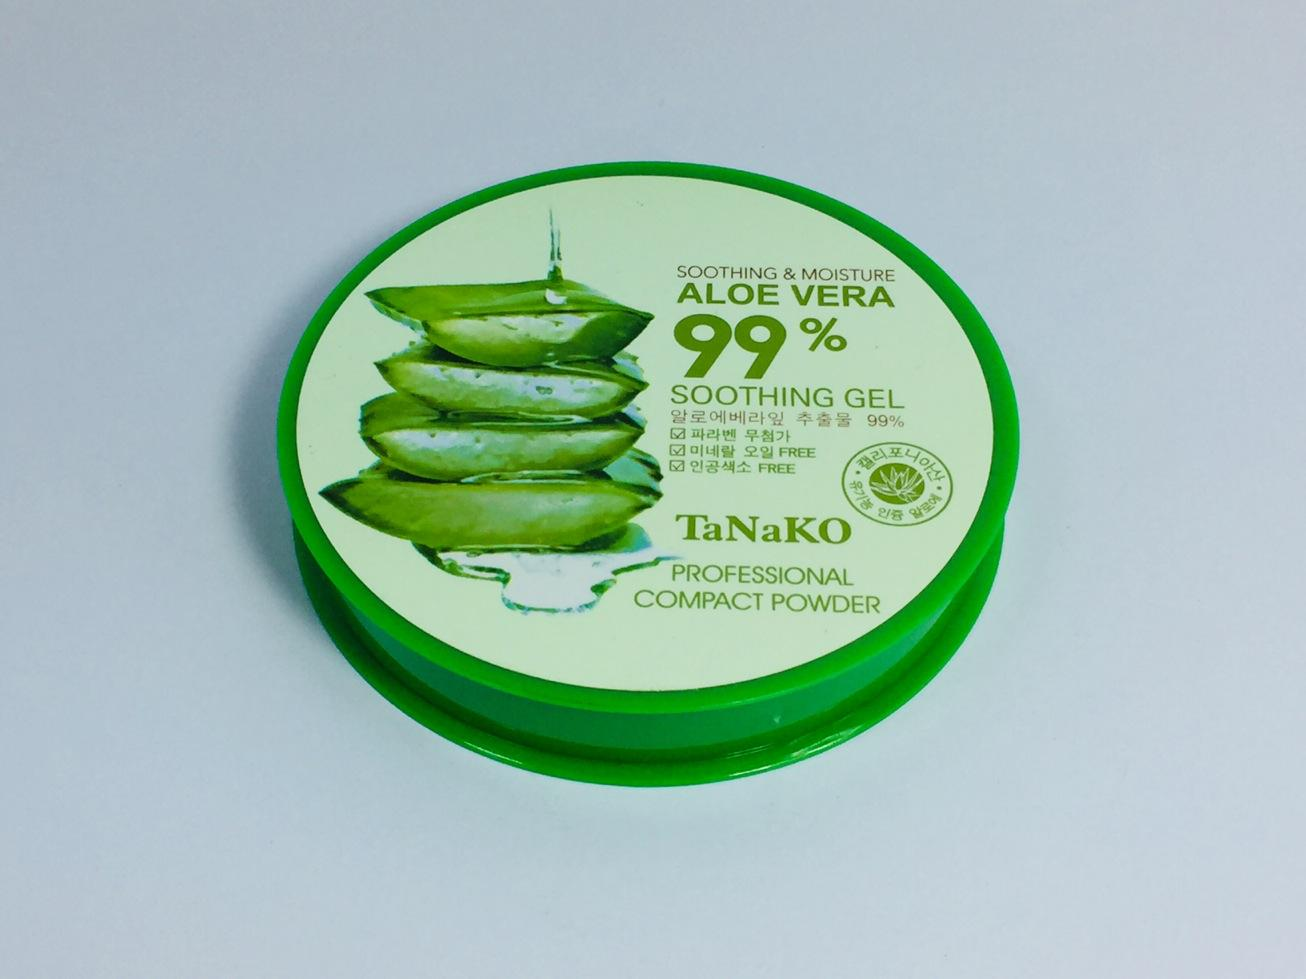 Tanako Moisturizing Smooth Foundation 99 % Aloe Vera Concealer Pores Cover Whitening Brighten Pressed Powder Philippines